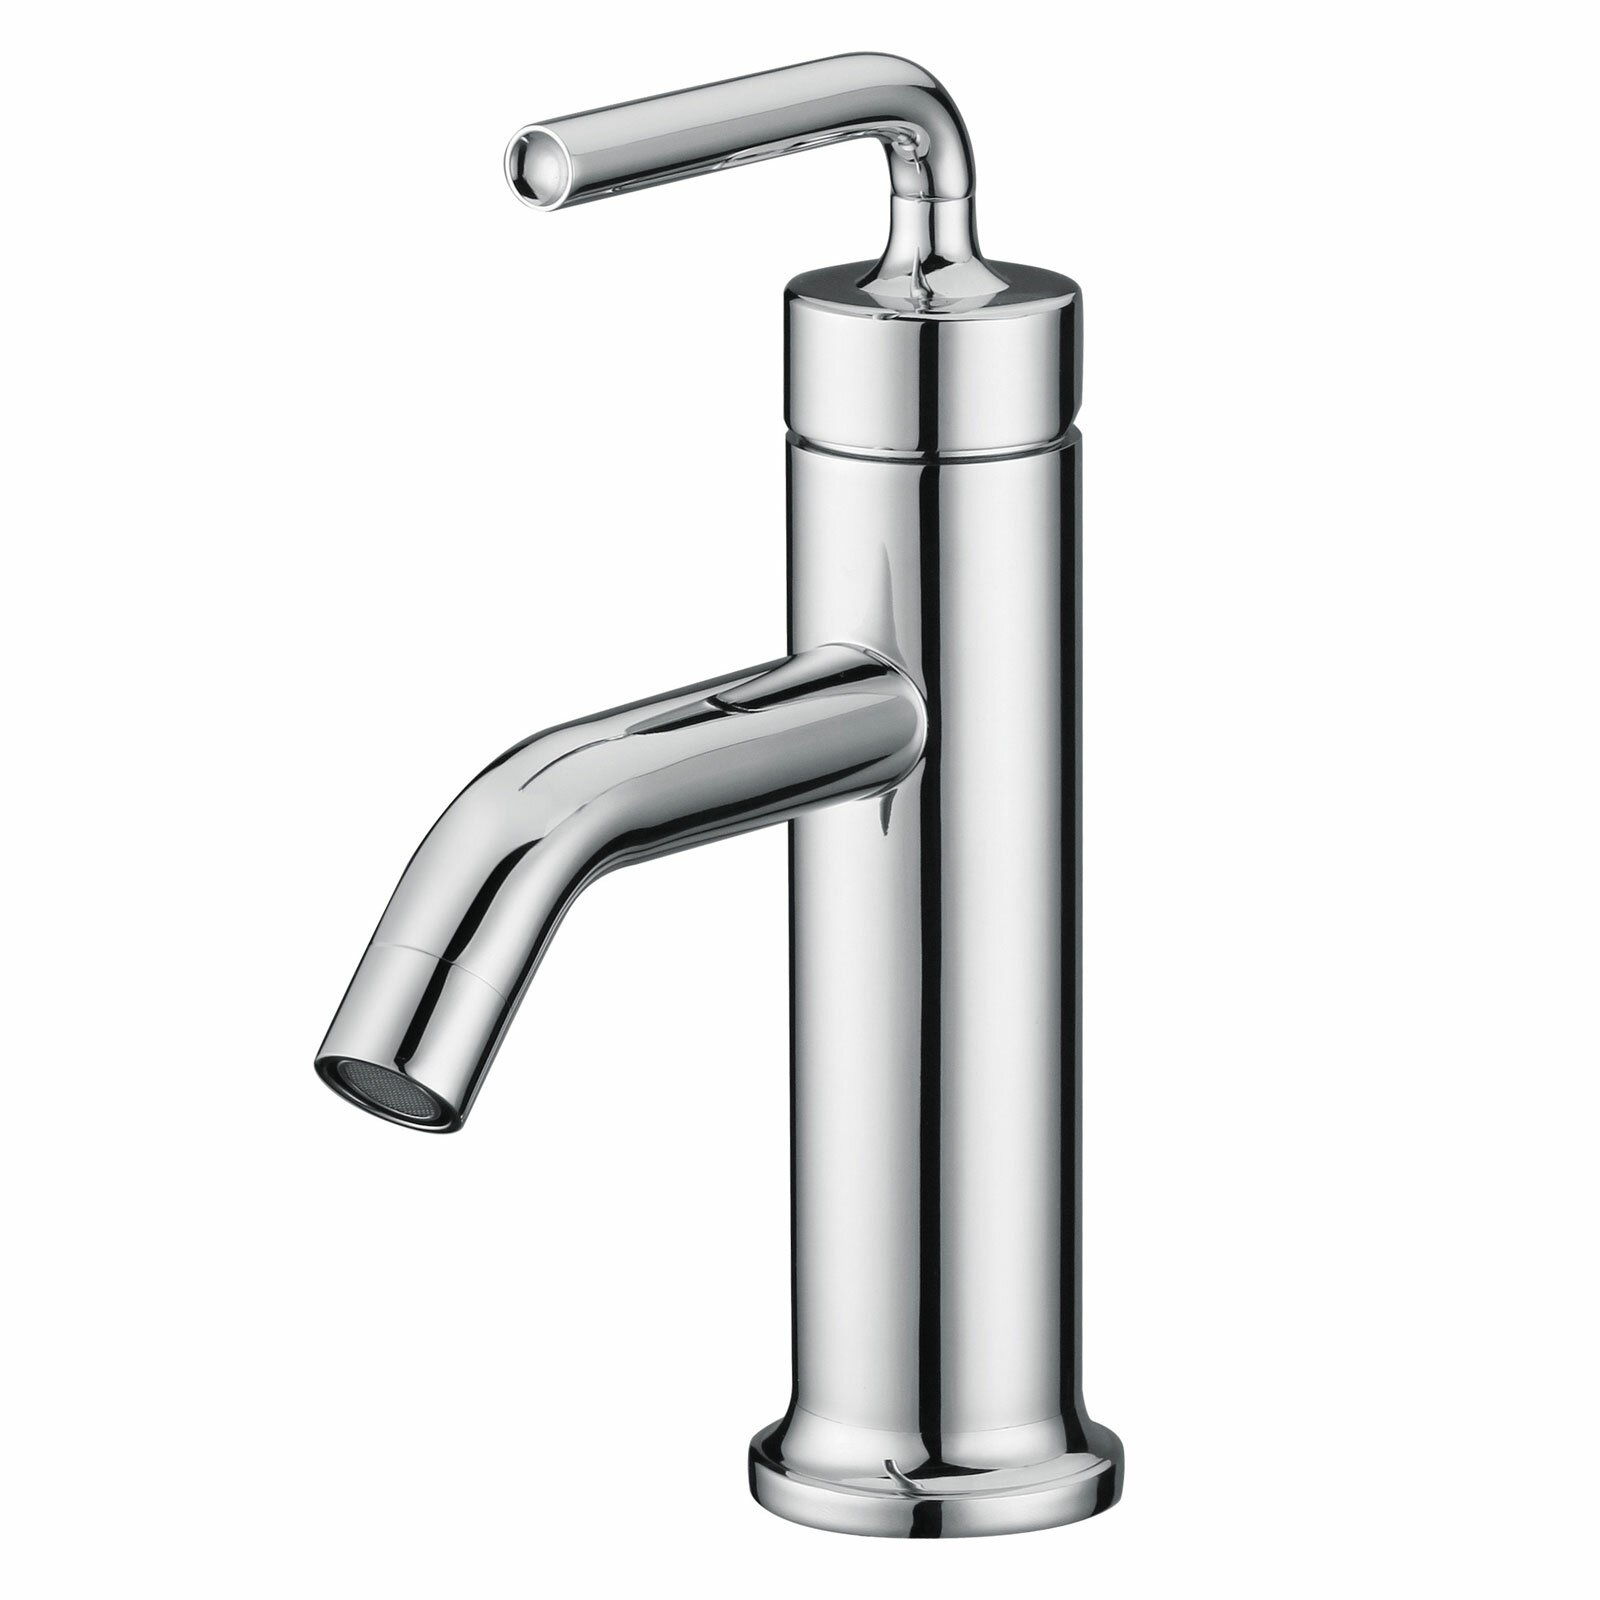 Bathroom Single Handle Faucet : Elite Single Handle Bathroom Faucet & Reviews Wayfair